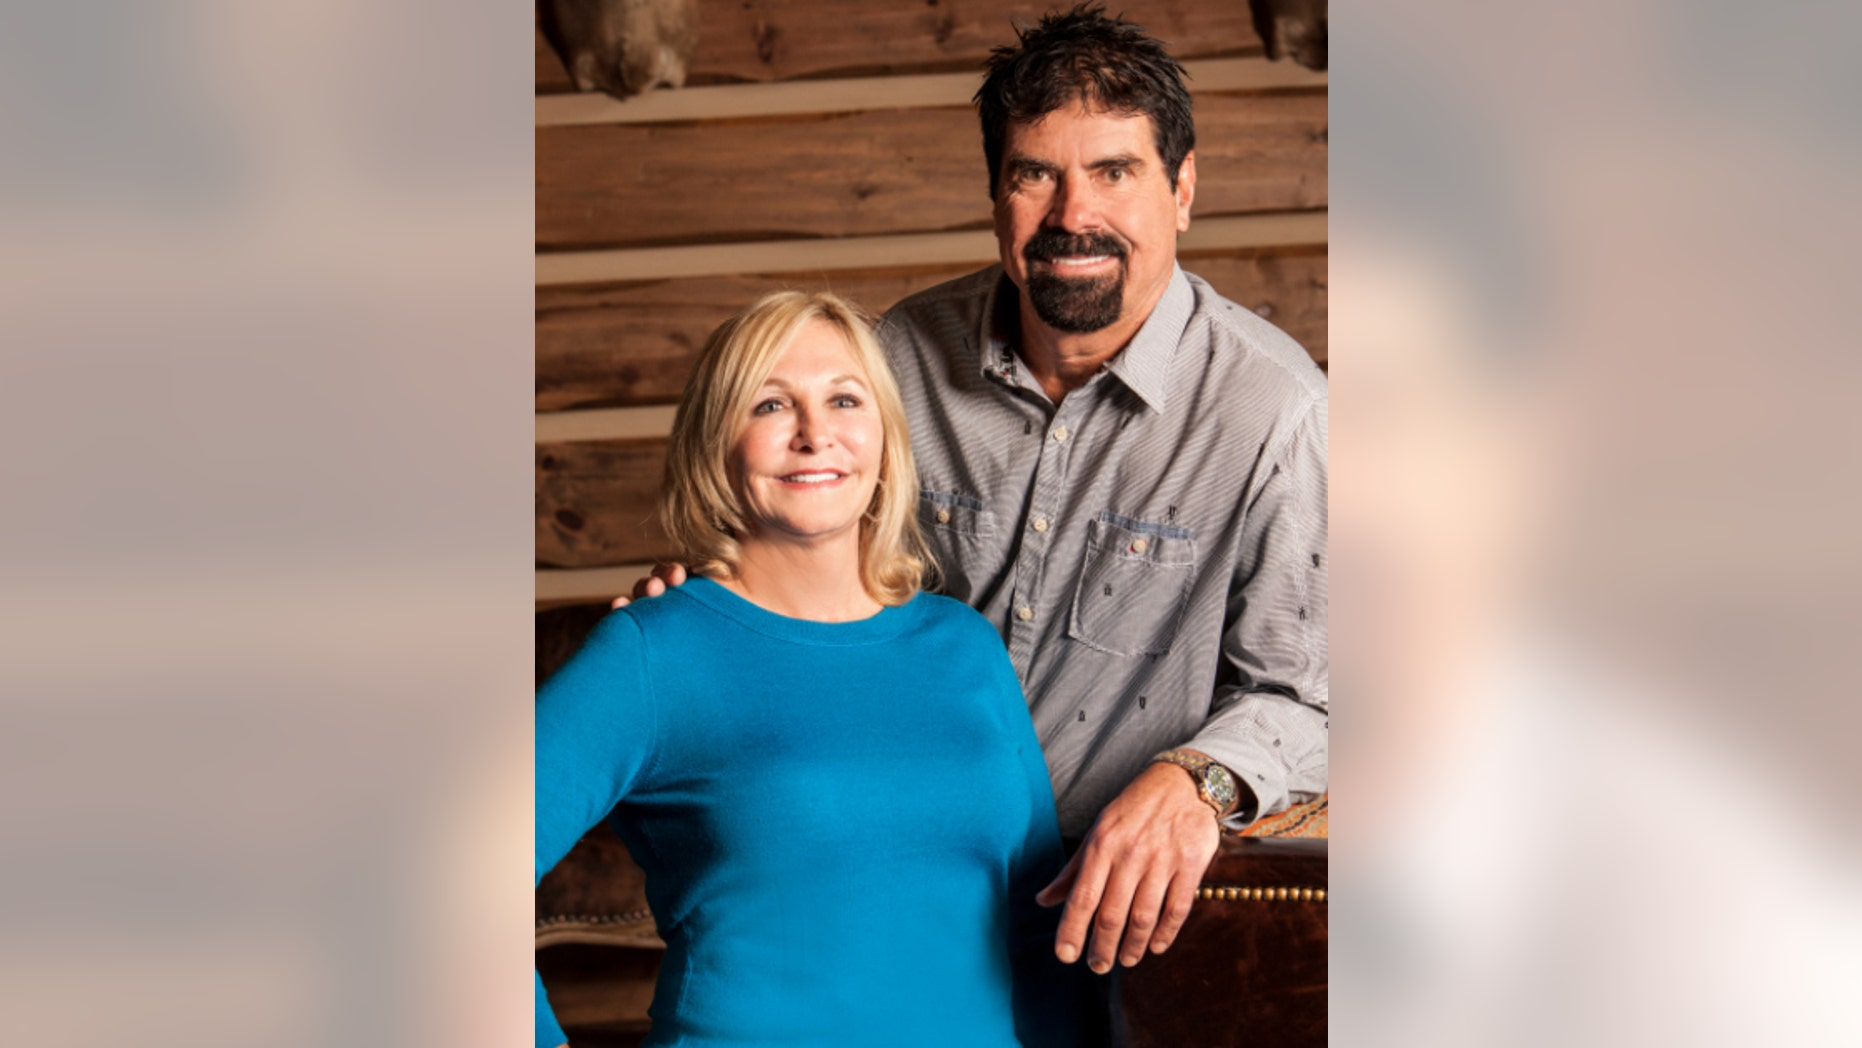 """Beth Busbice and Bill Busbice of A&E's """"Country Buck$."""""""